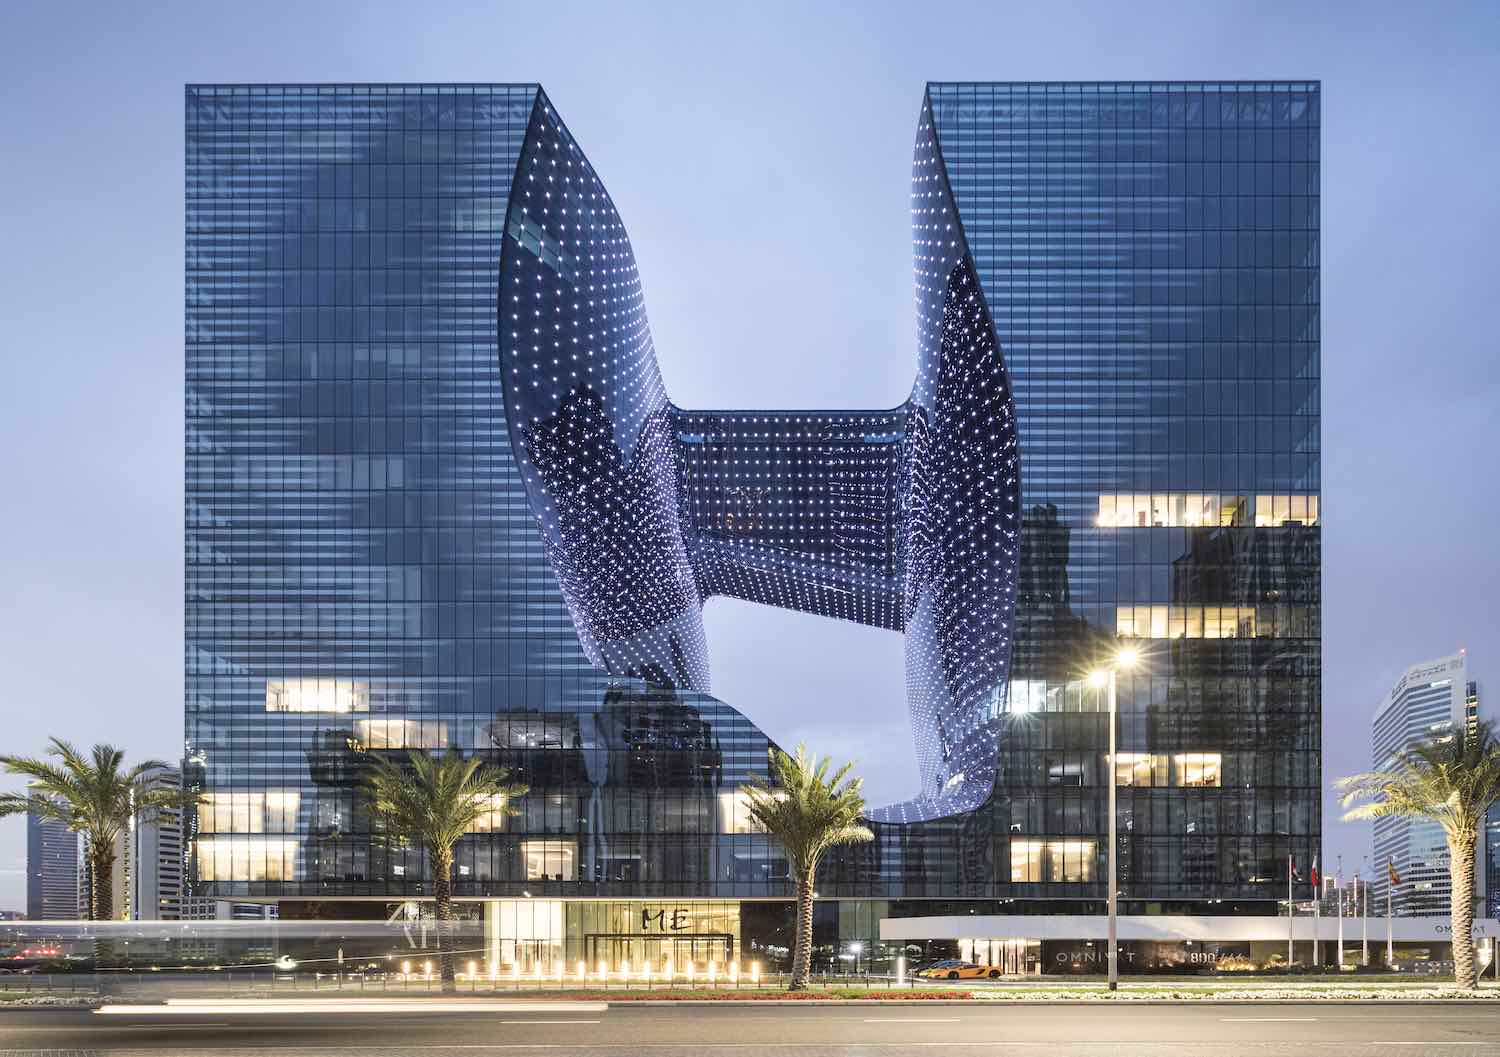 OPUS by Zaha Hadid Architects in Dubai - Photo: ©Laurian Ghinitoiu.